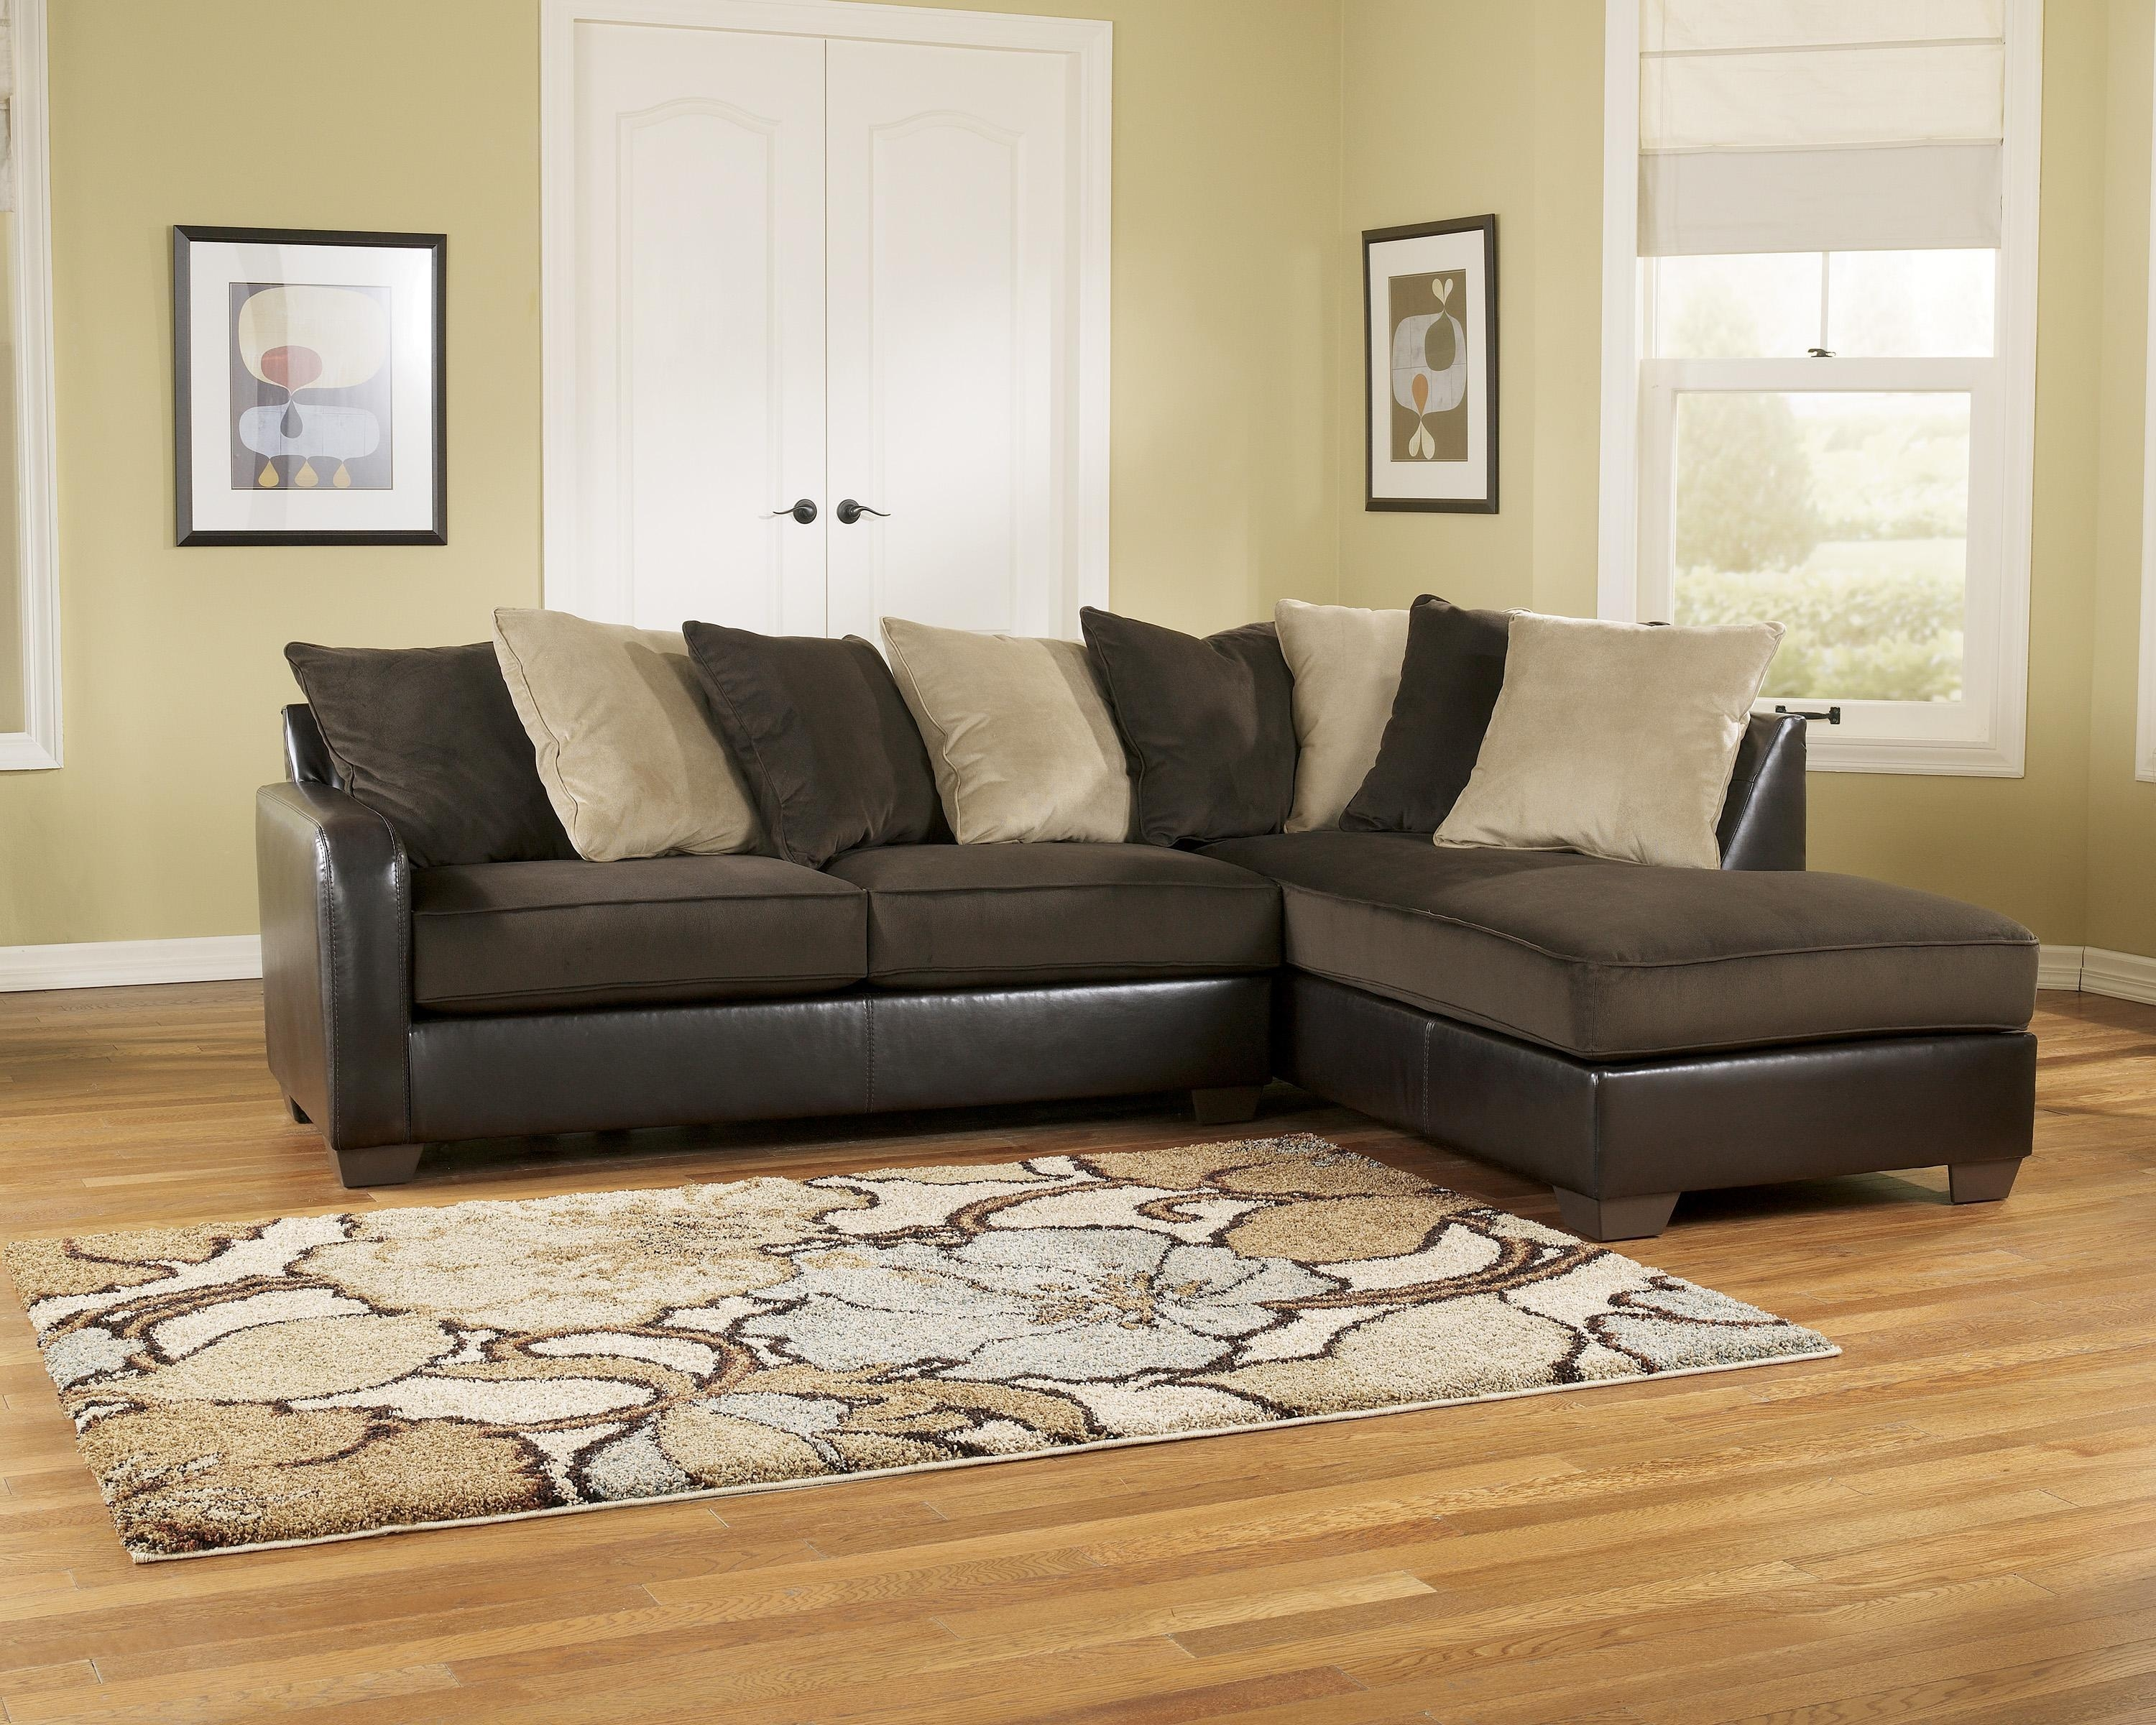 Corduroy Sectional Sofa Chocolate Corduroy Reversible Chaise Sectional Sofa Thesofa